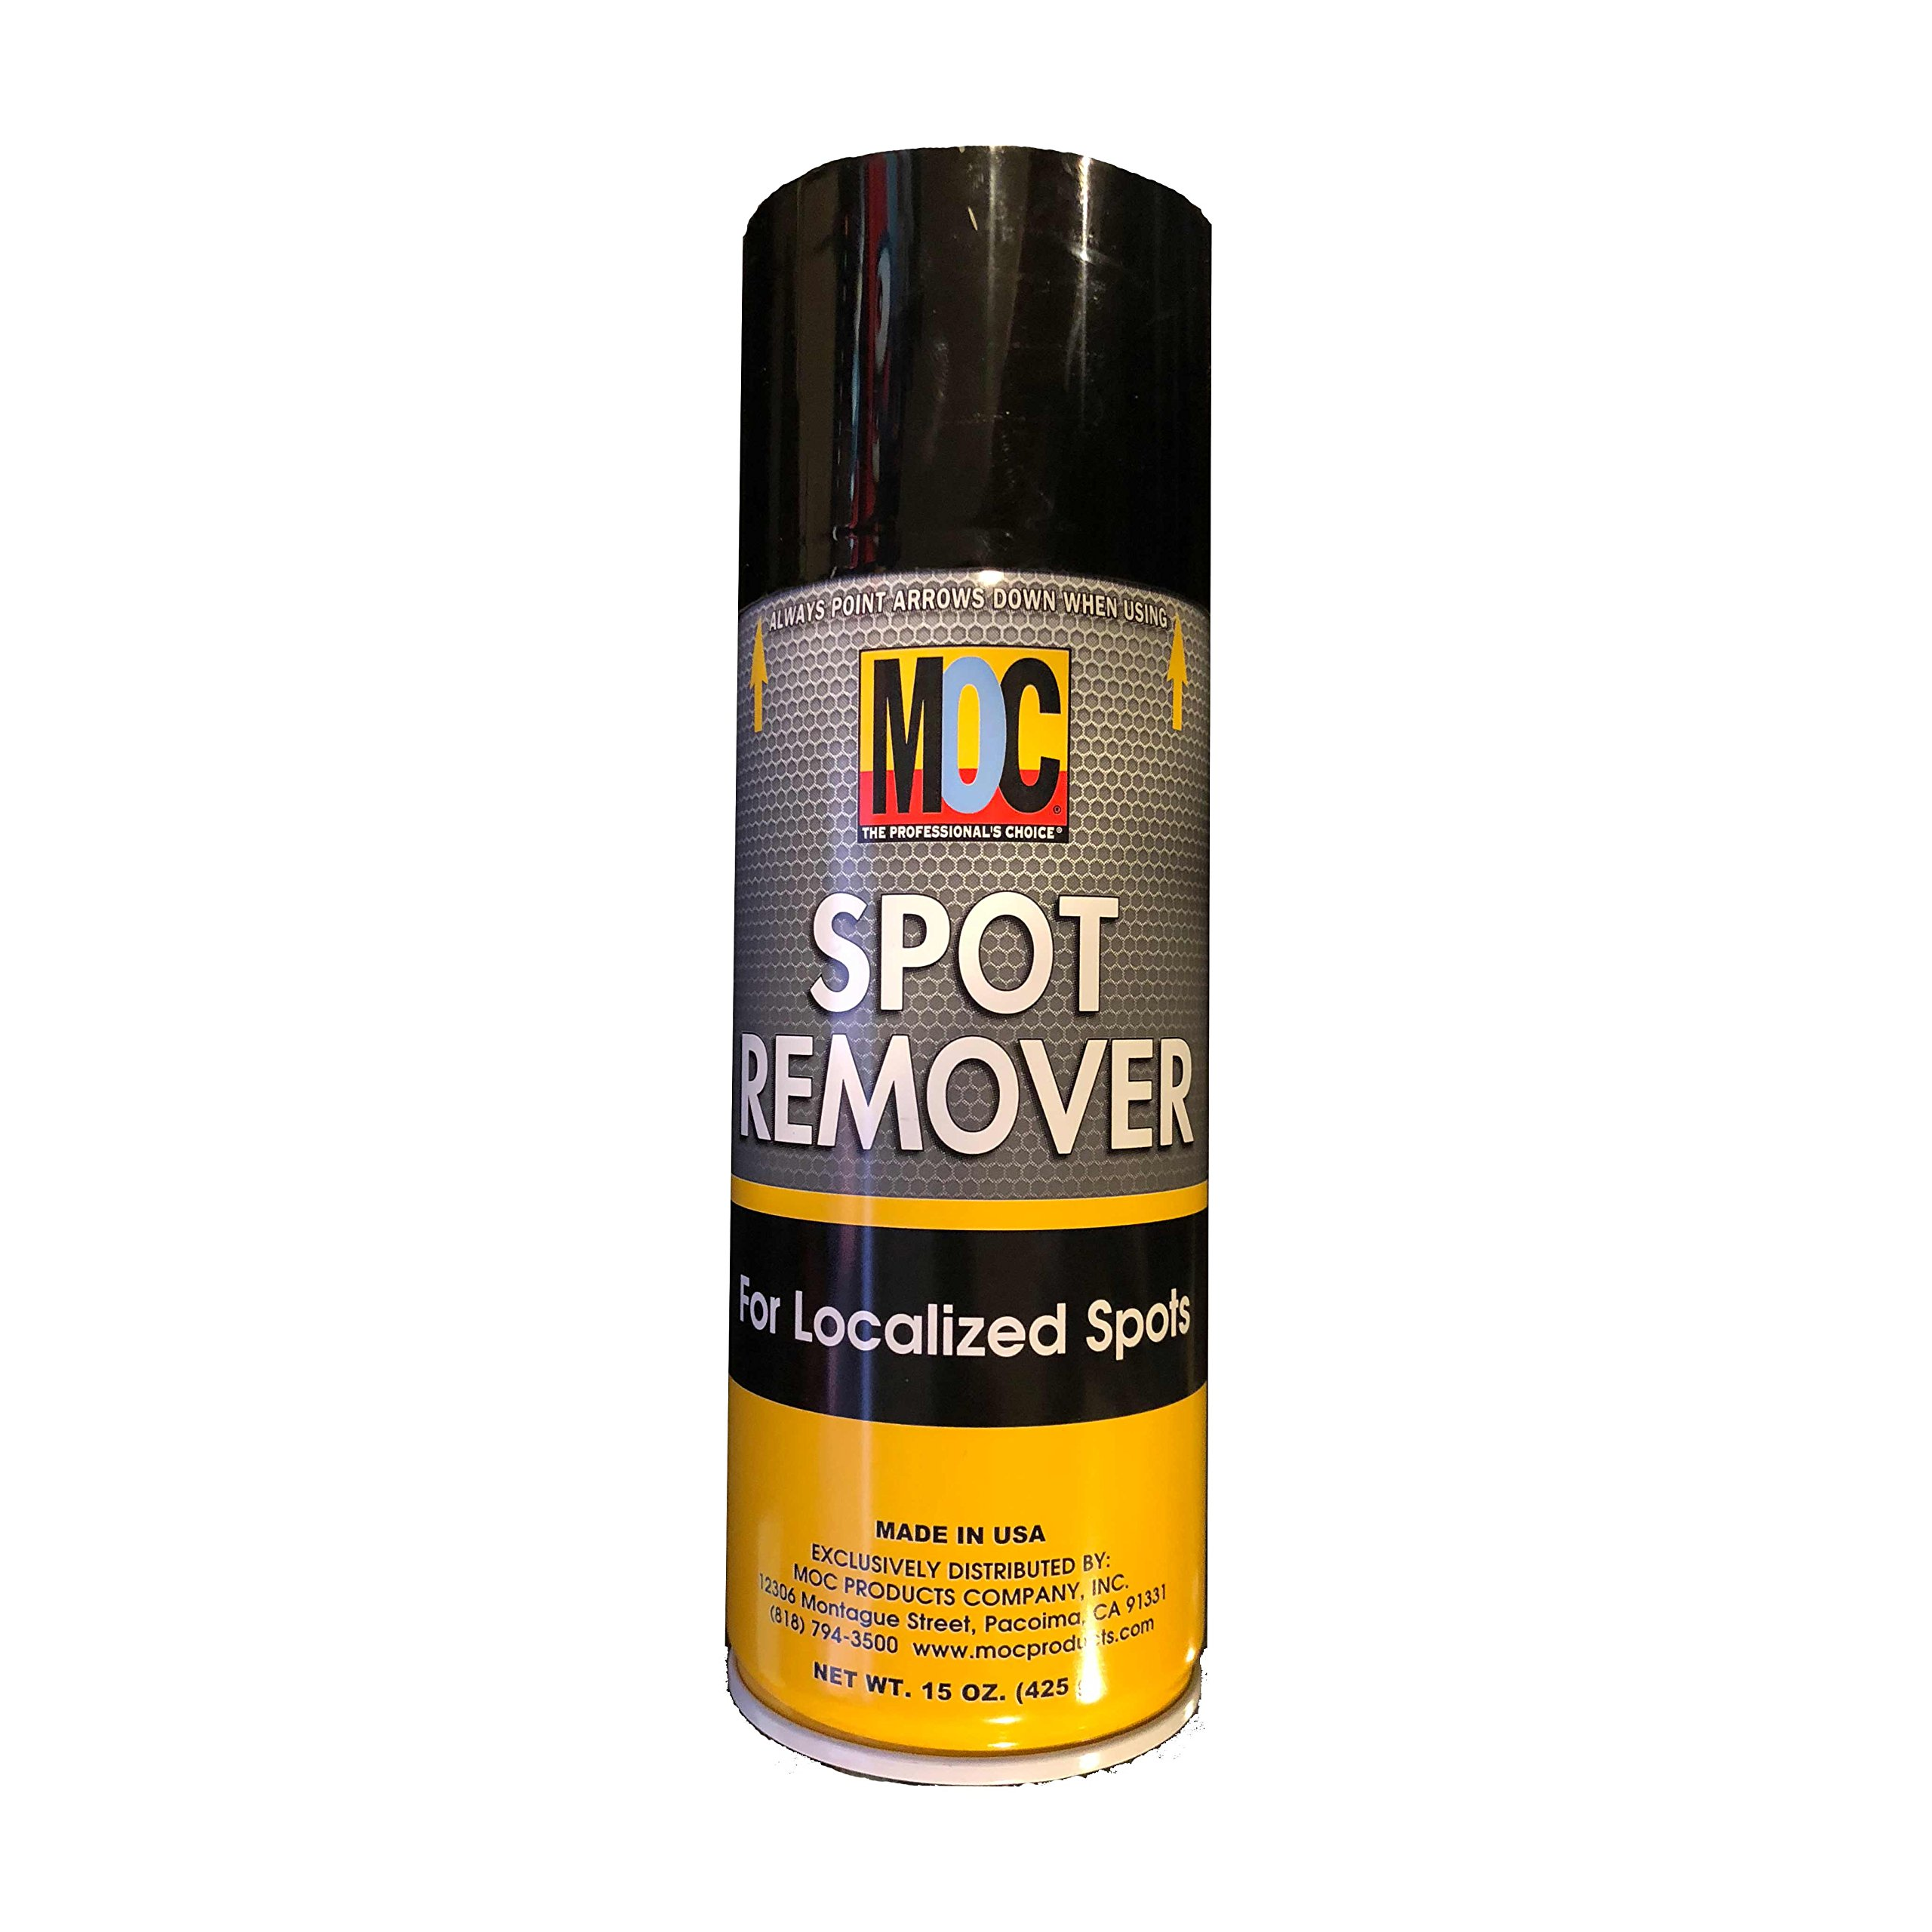 MOC SPOT Remover - for localized spots (Professional Detailer's #1 Choice)